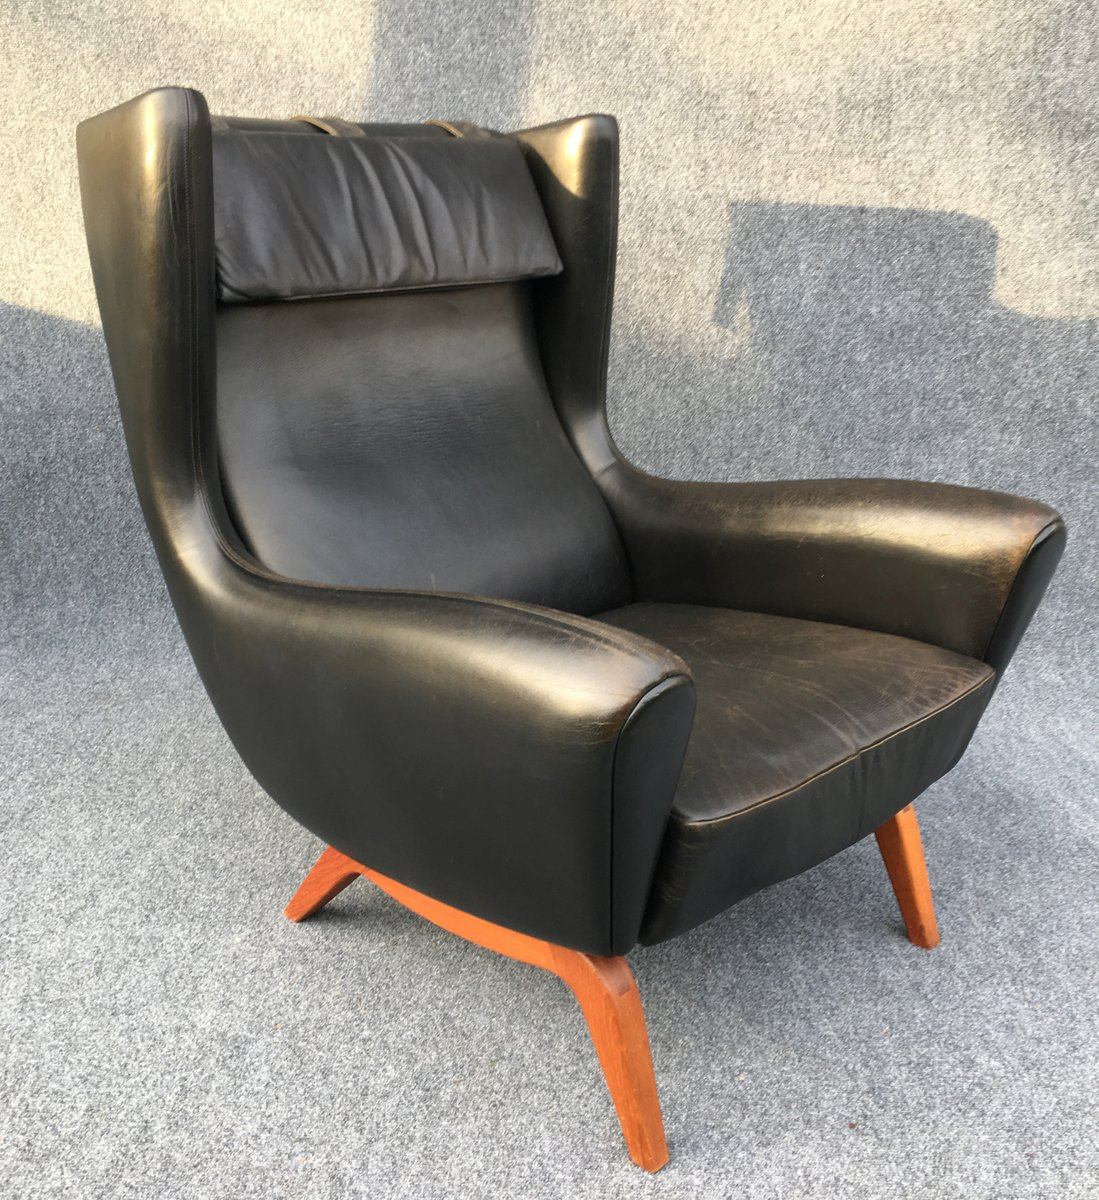 Black Leather Lounge Chair Black Leather Lounge Chair By Illum Wikkelsø For Søren Willadsen Møbelfabrik 1950s